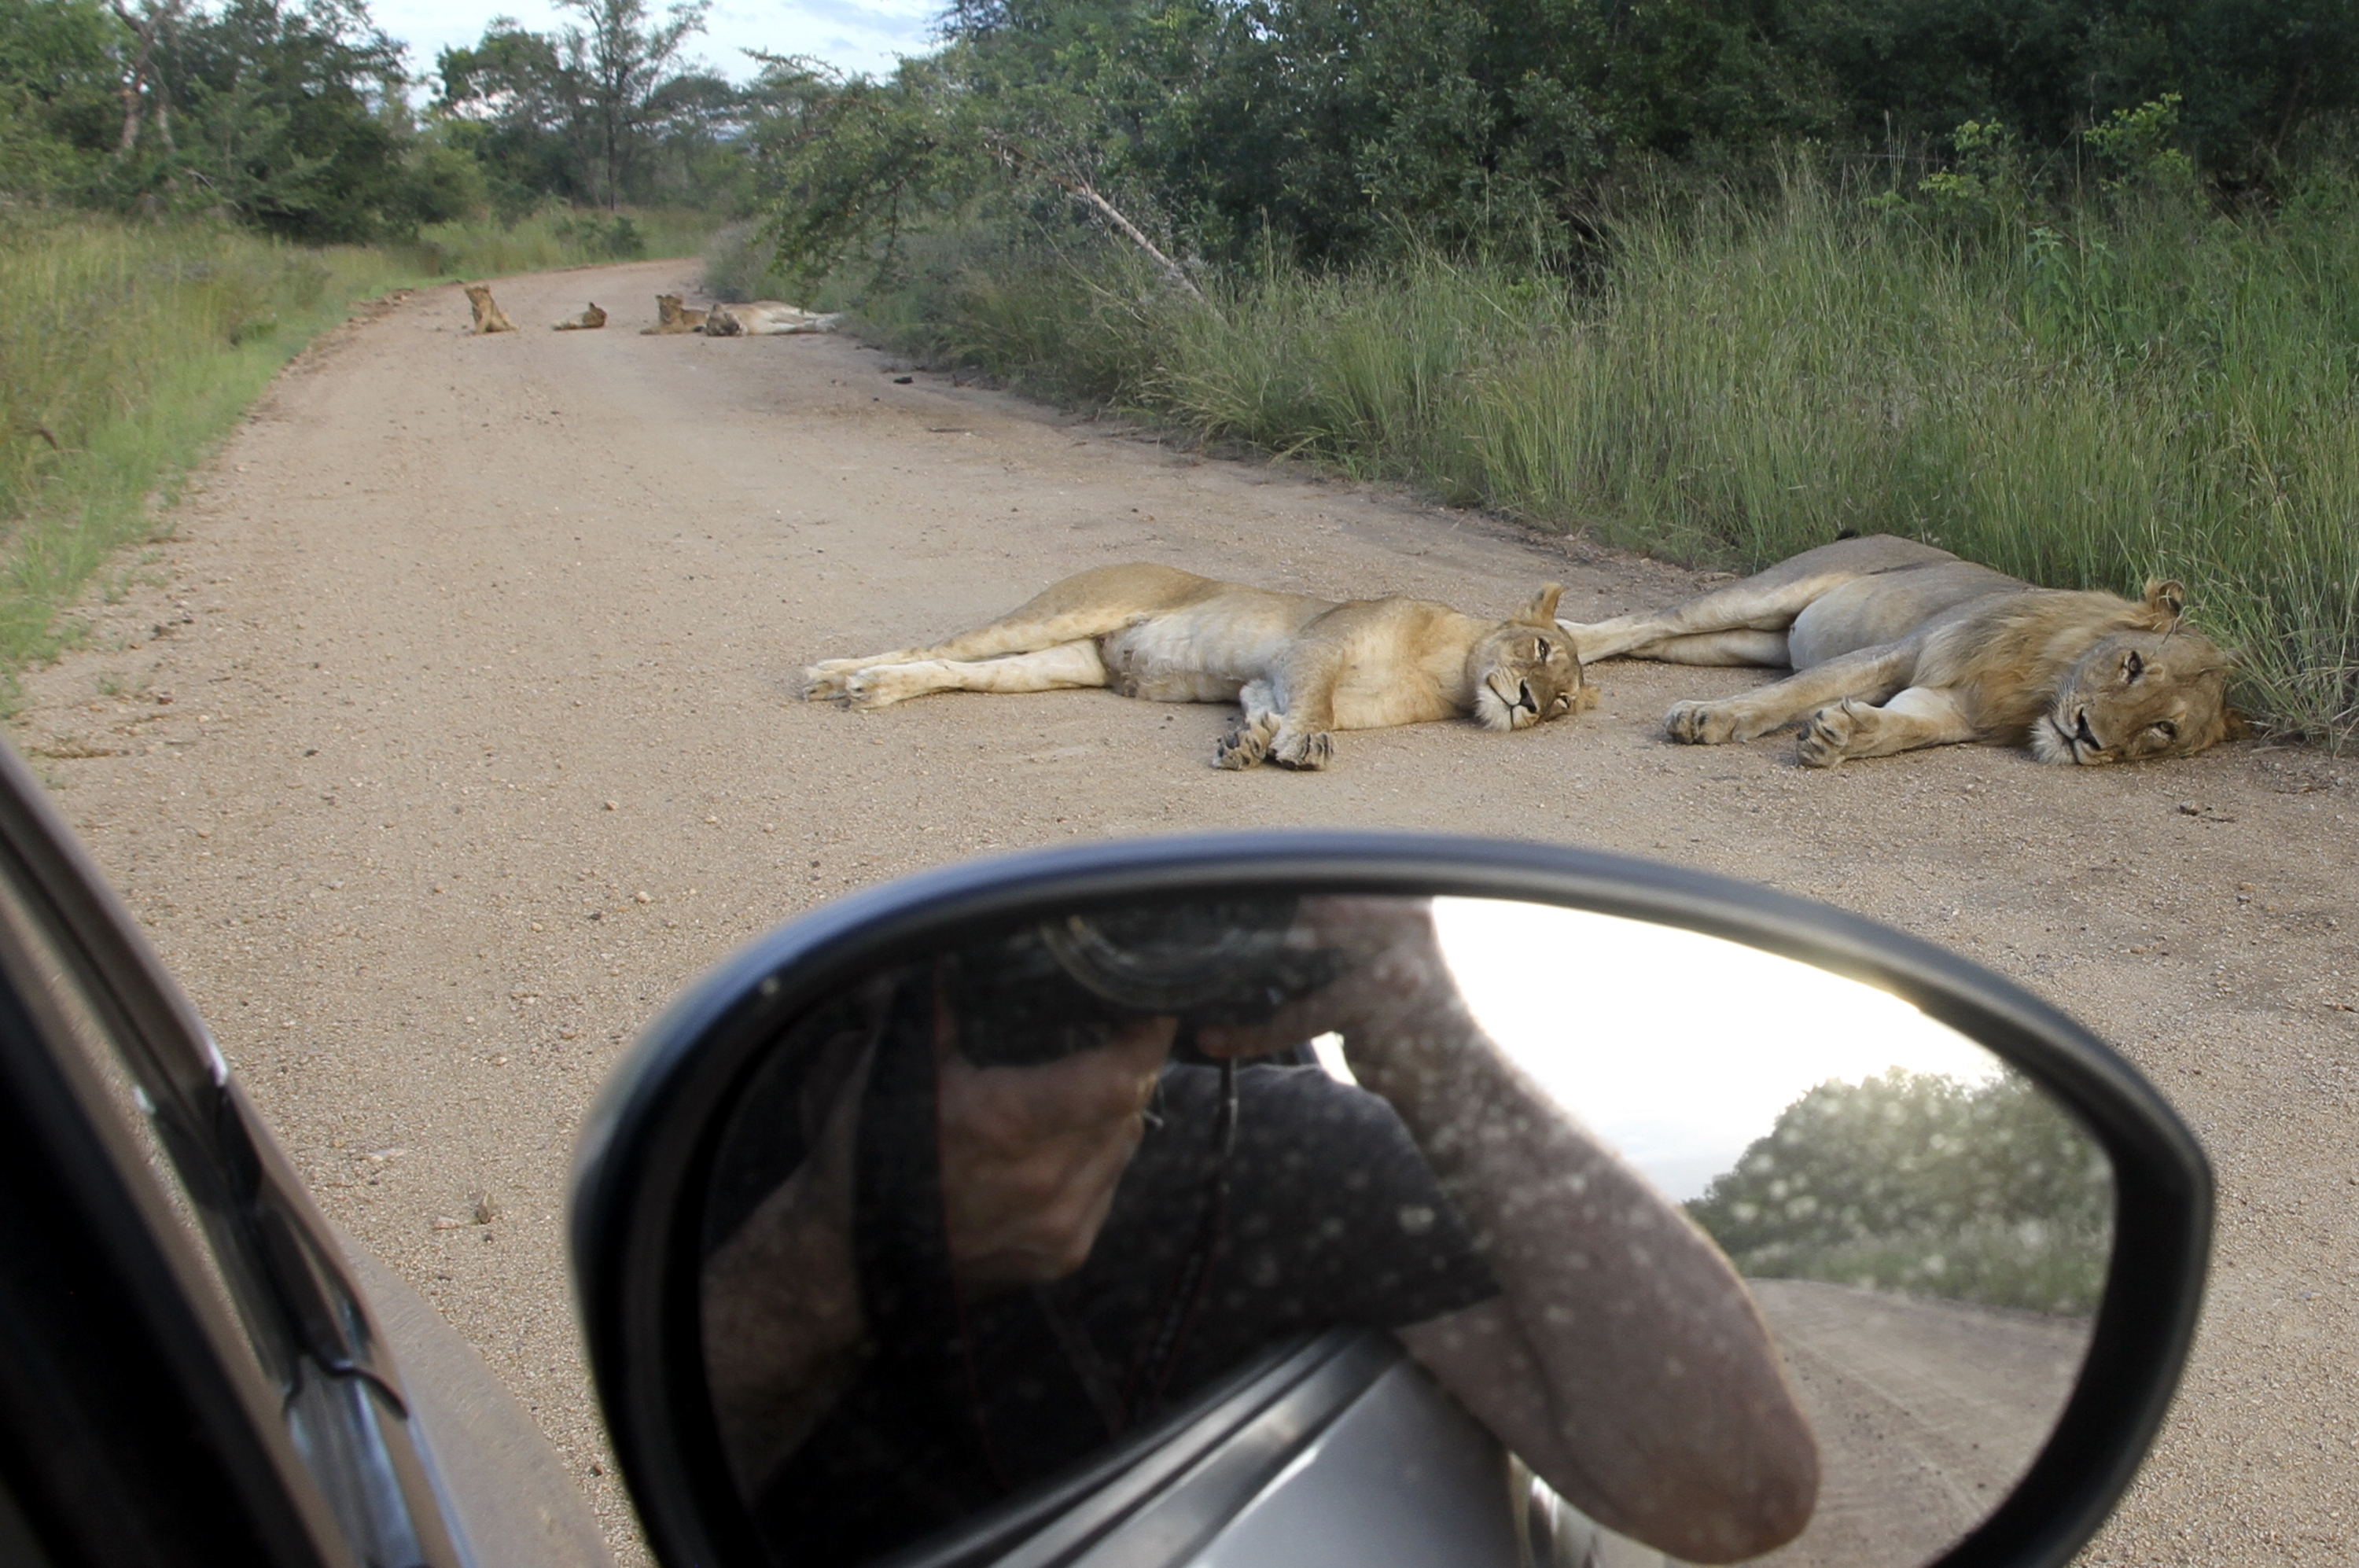 Lounging lions on a road at Kruger National Park, South Africa, Feb. 14, 2014. By driving yourself, cooking for yourself and camping, you can do Kruger for around $100 per couple per day, including everything but airfare. (Seth Kugel/The New York Times) -- PHOTO MOVED IN ADVANCE AND NOT FOR USE - ONLINE OR IN PRINT - BEFORE MARCH 30, 2014.